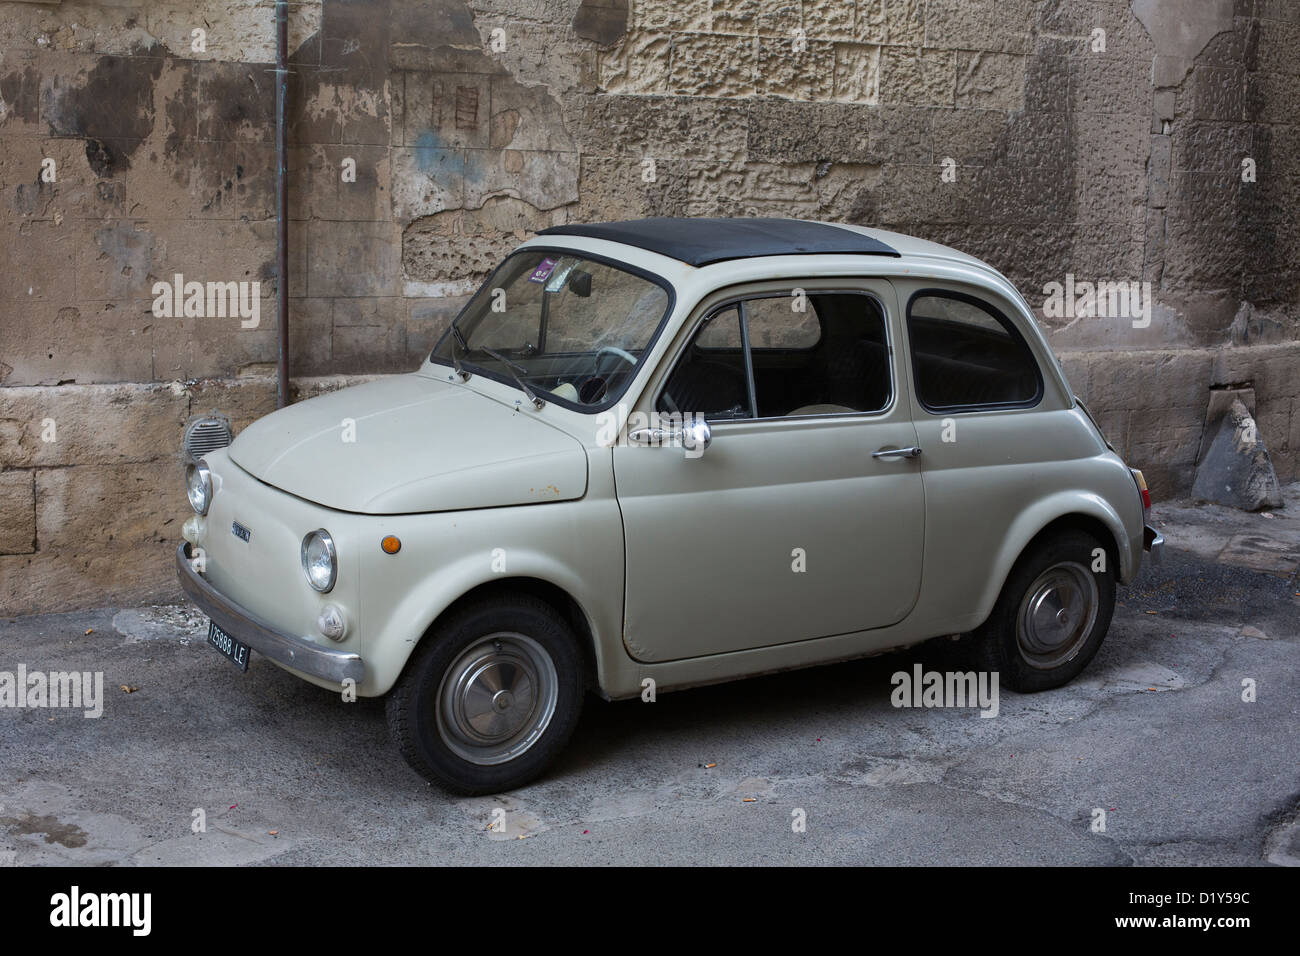 Fiat 500 Cinquecento Car Auto Funny Wagen Stock Photos Fiat 500